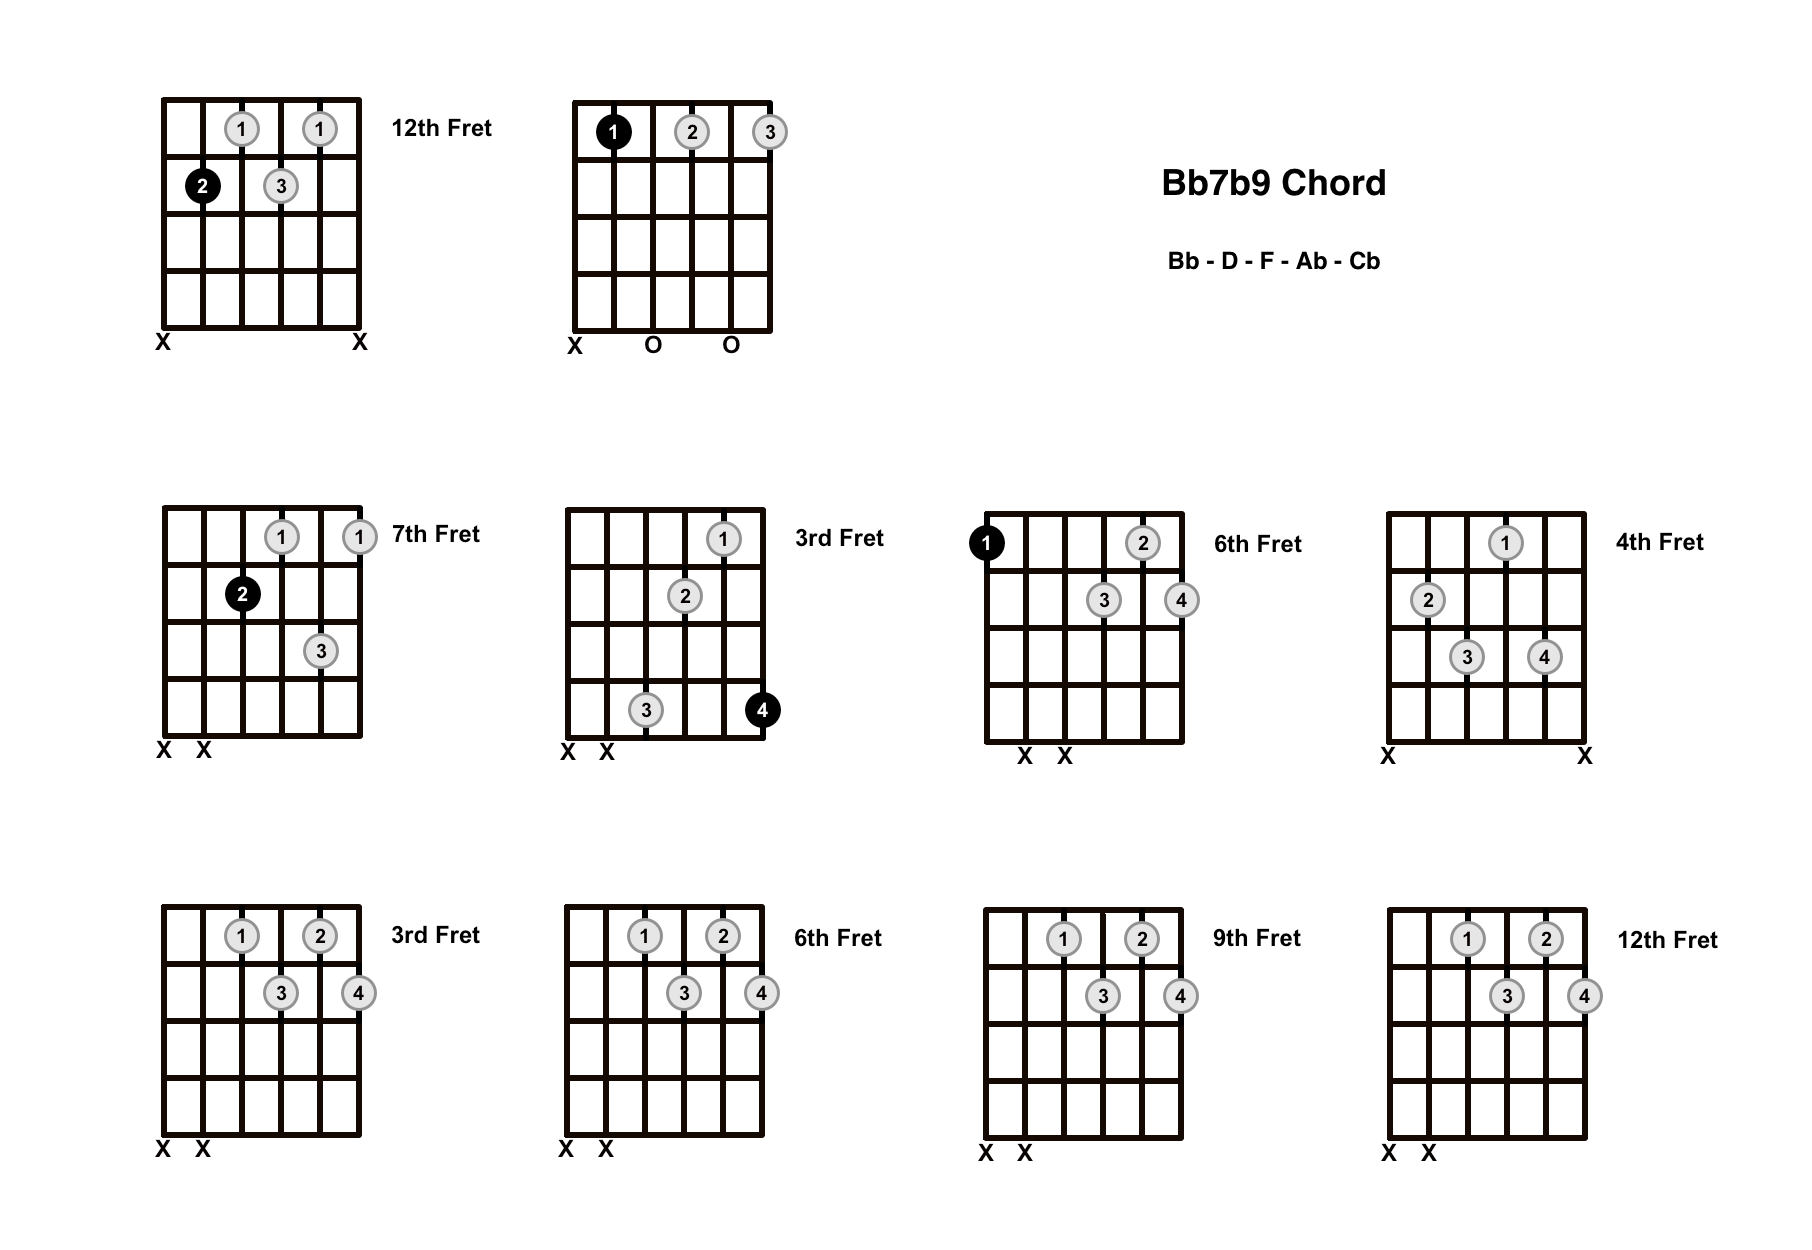 Bb7b9 Chord On The Guitar (B Flat 7 Flat 9) – Diagrams, Finger Positions and Theory